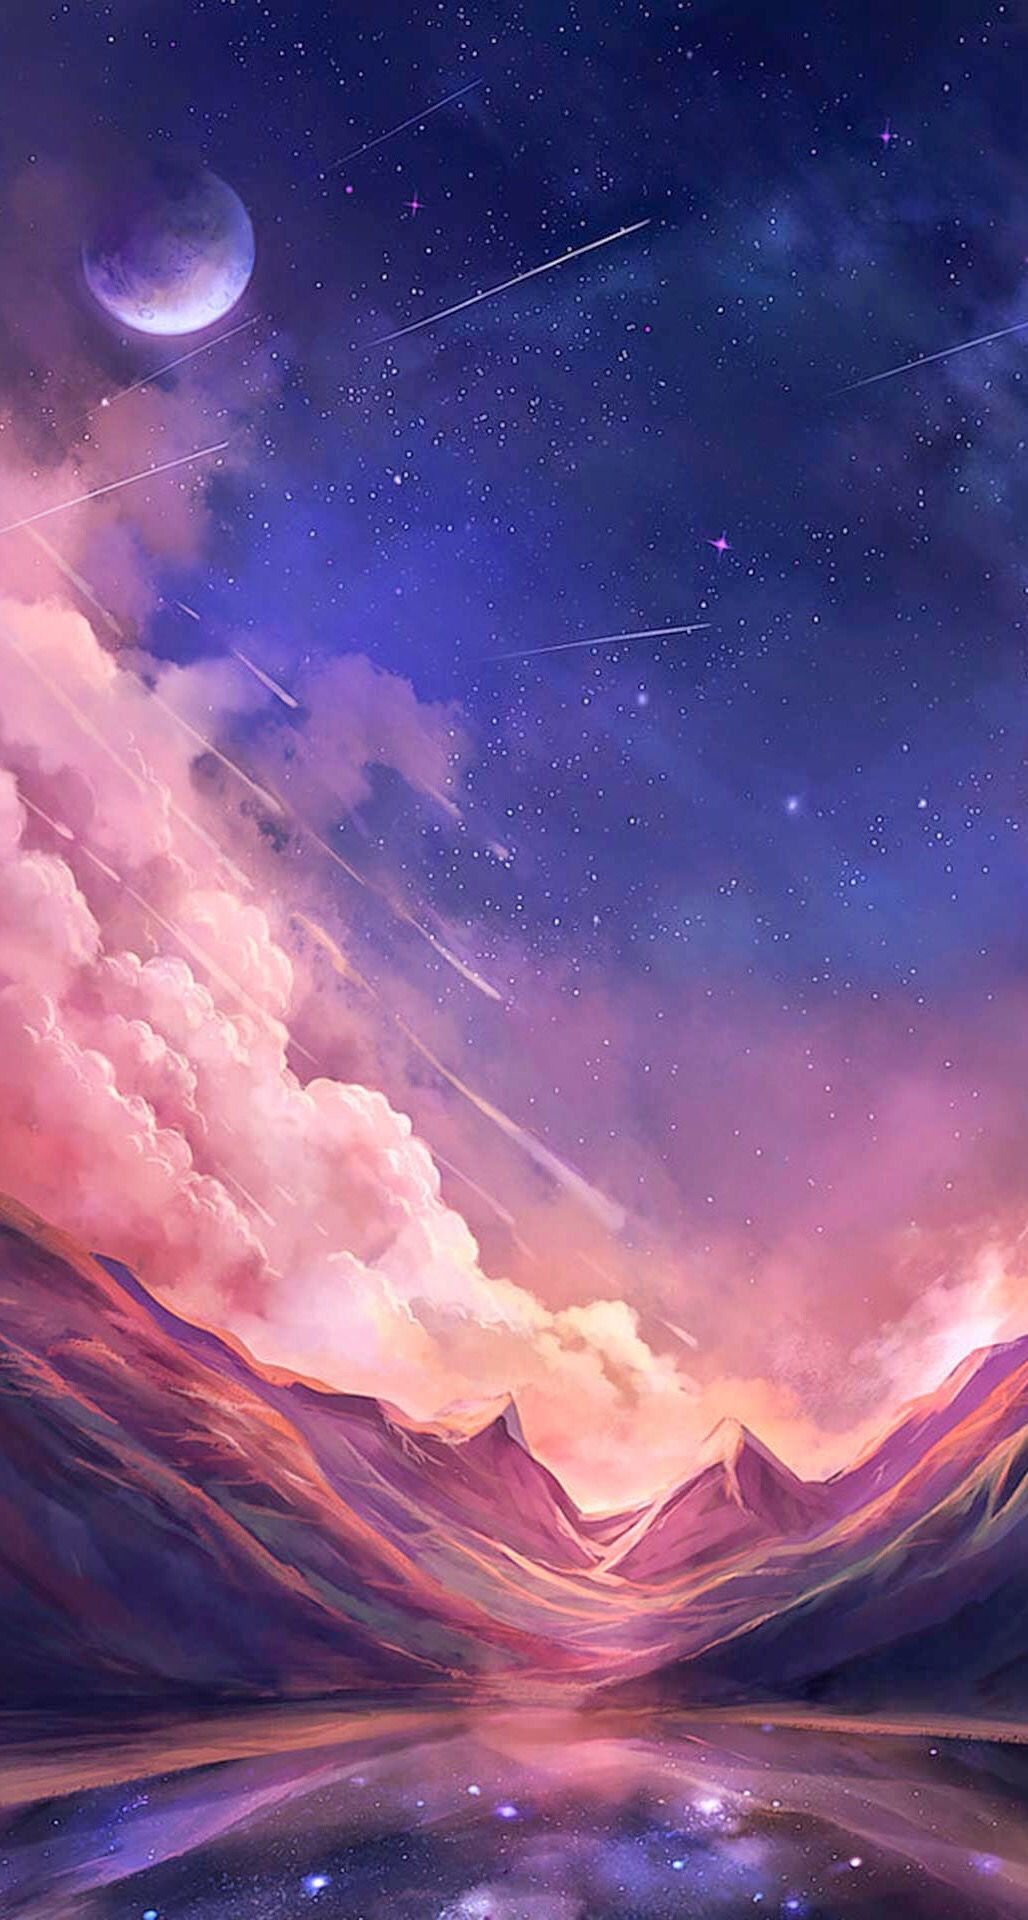 Beautiful Scenery wallpaper, Galaxy wallpaper, Landscape